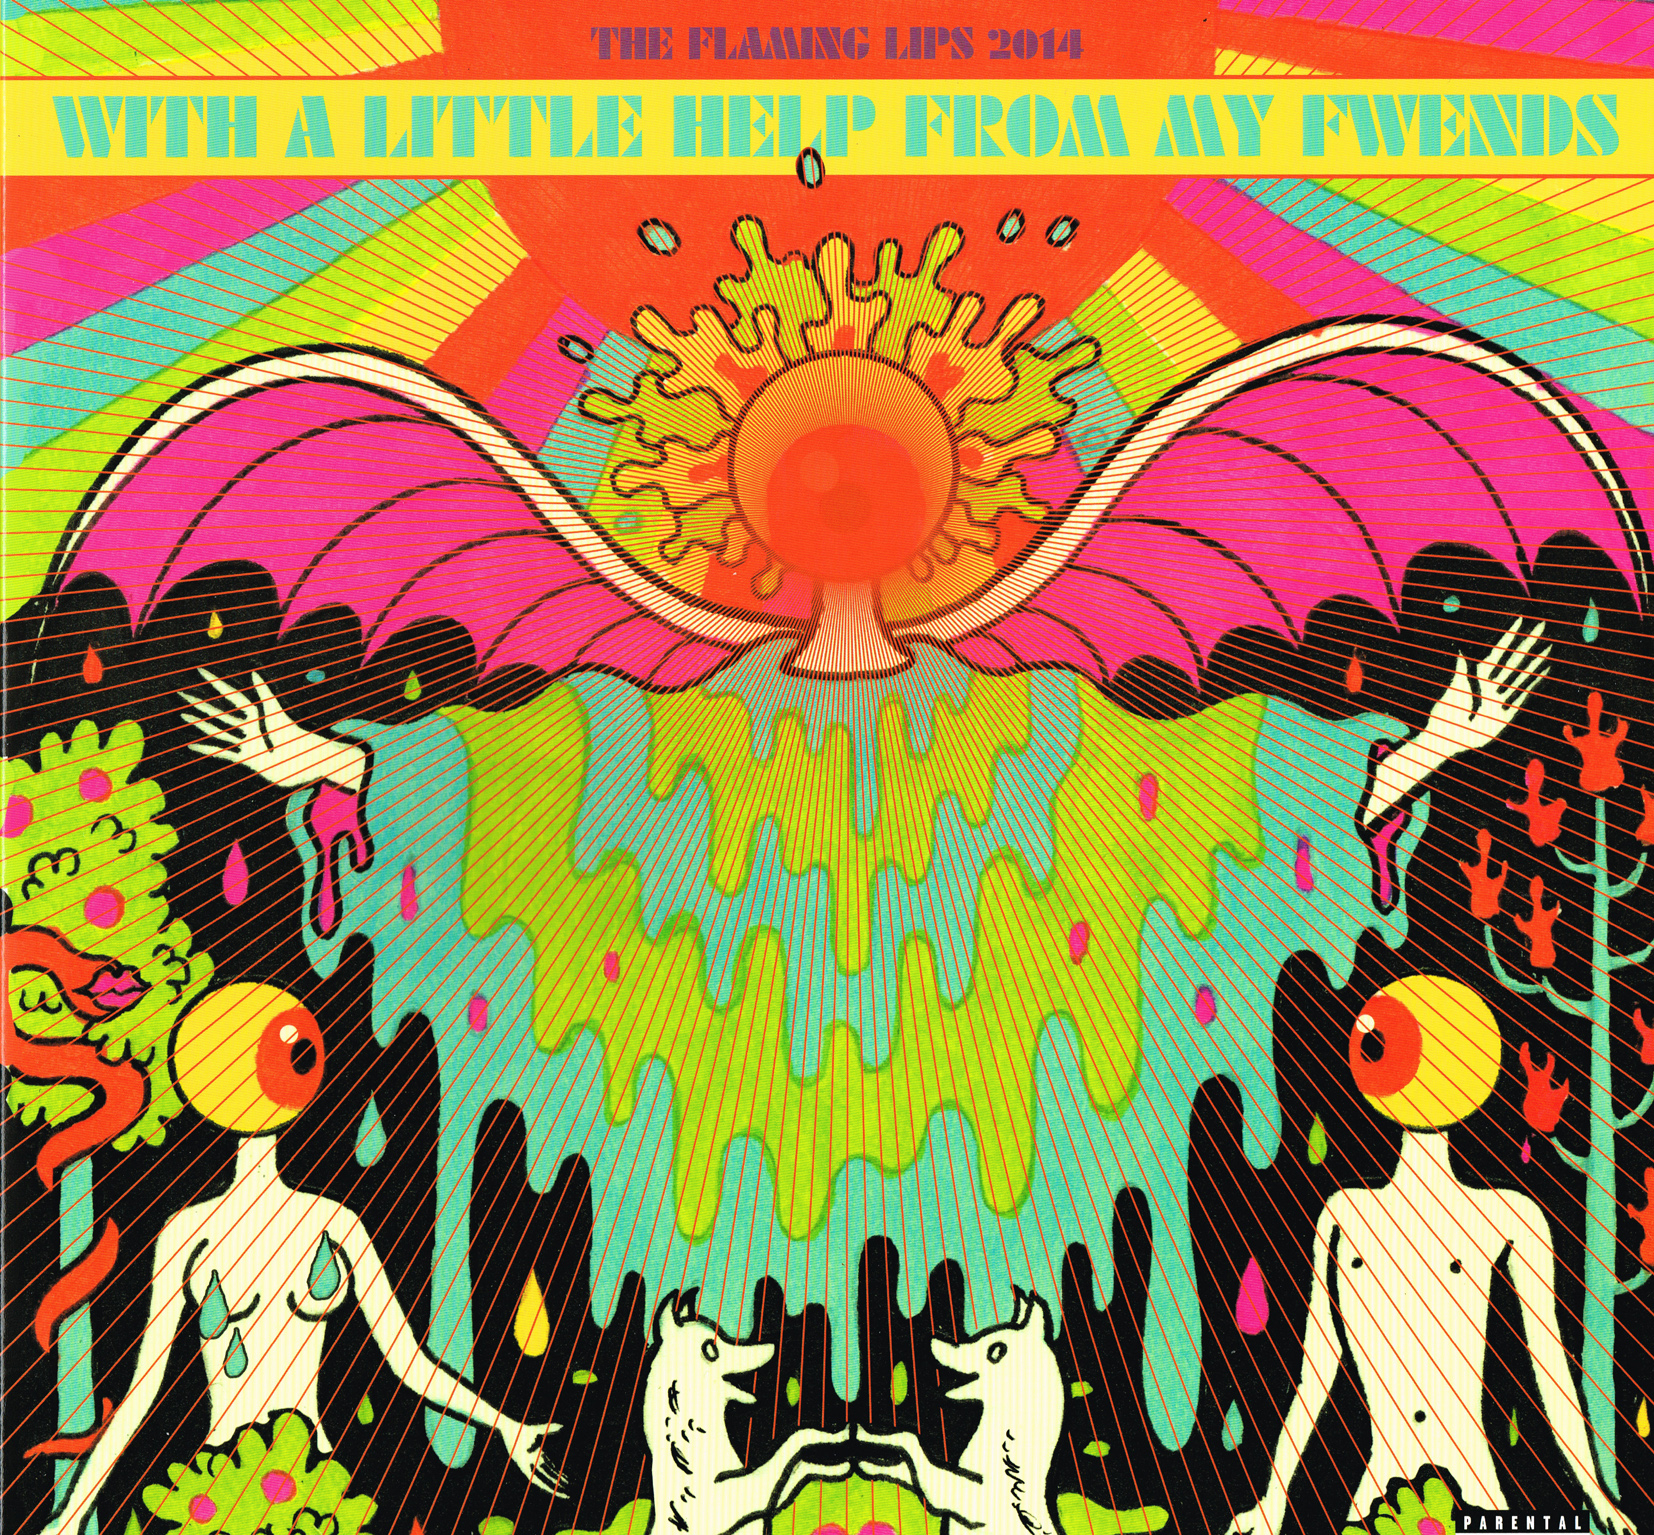 With A Little Help from My Fwends / The Flaming Lips